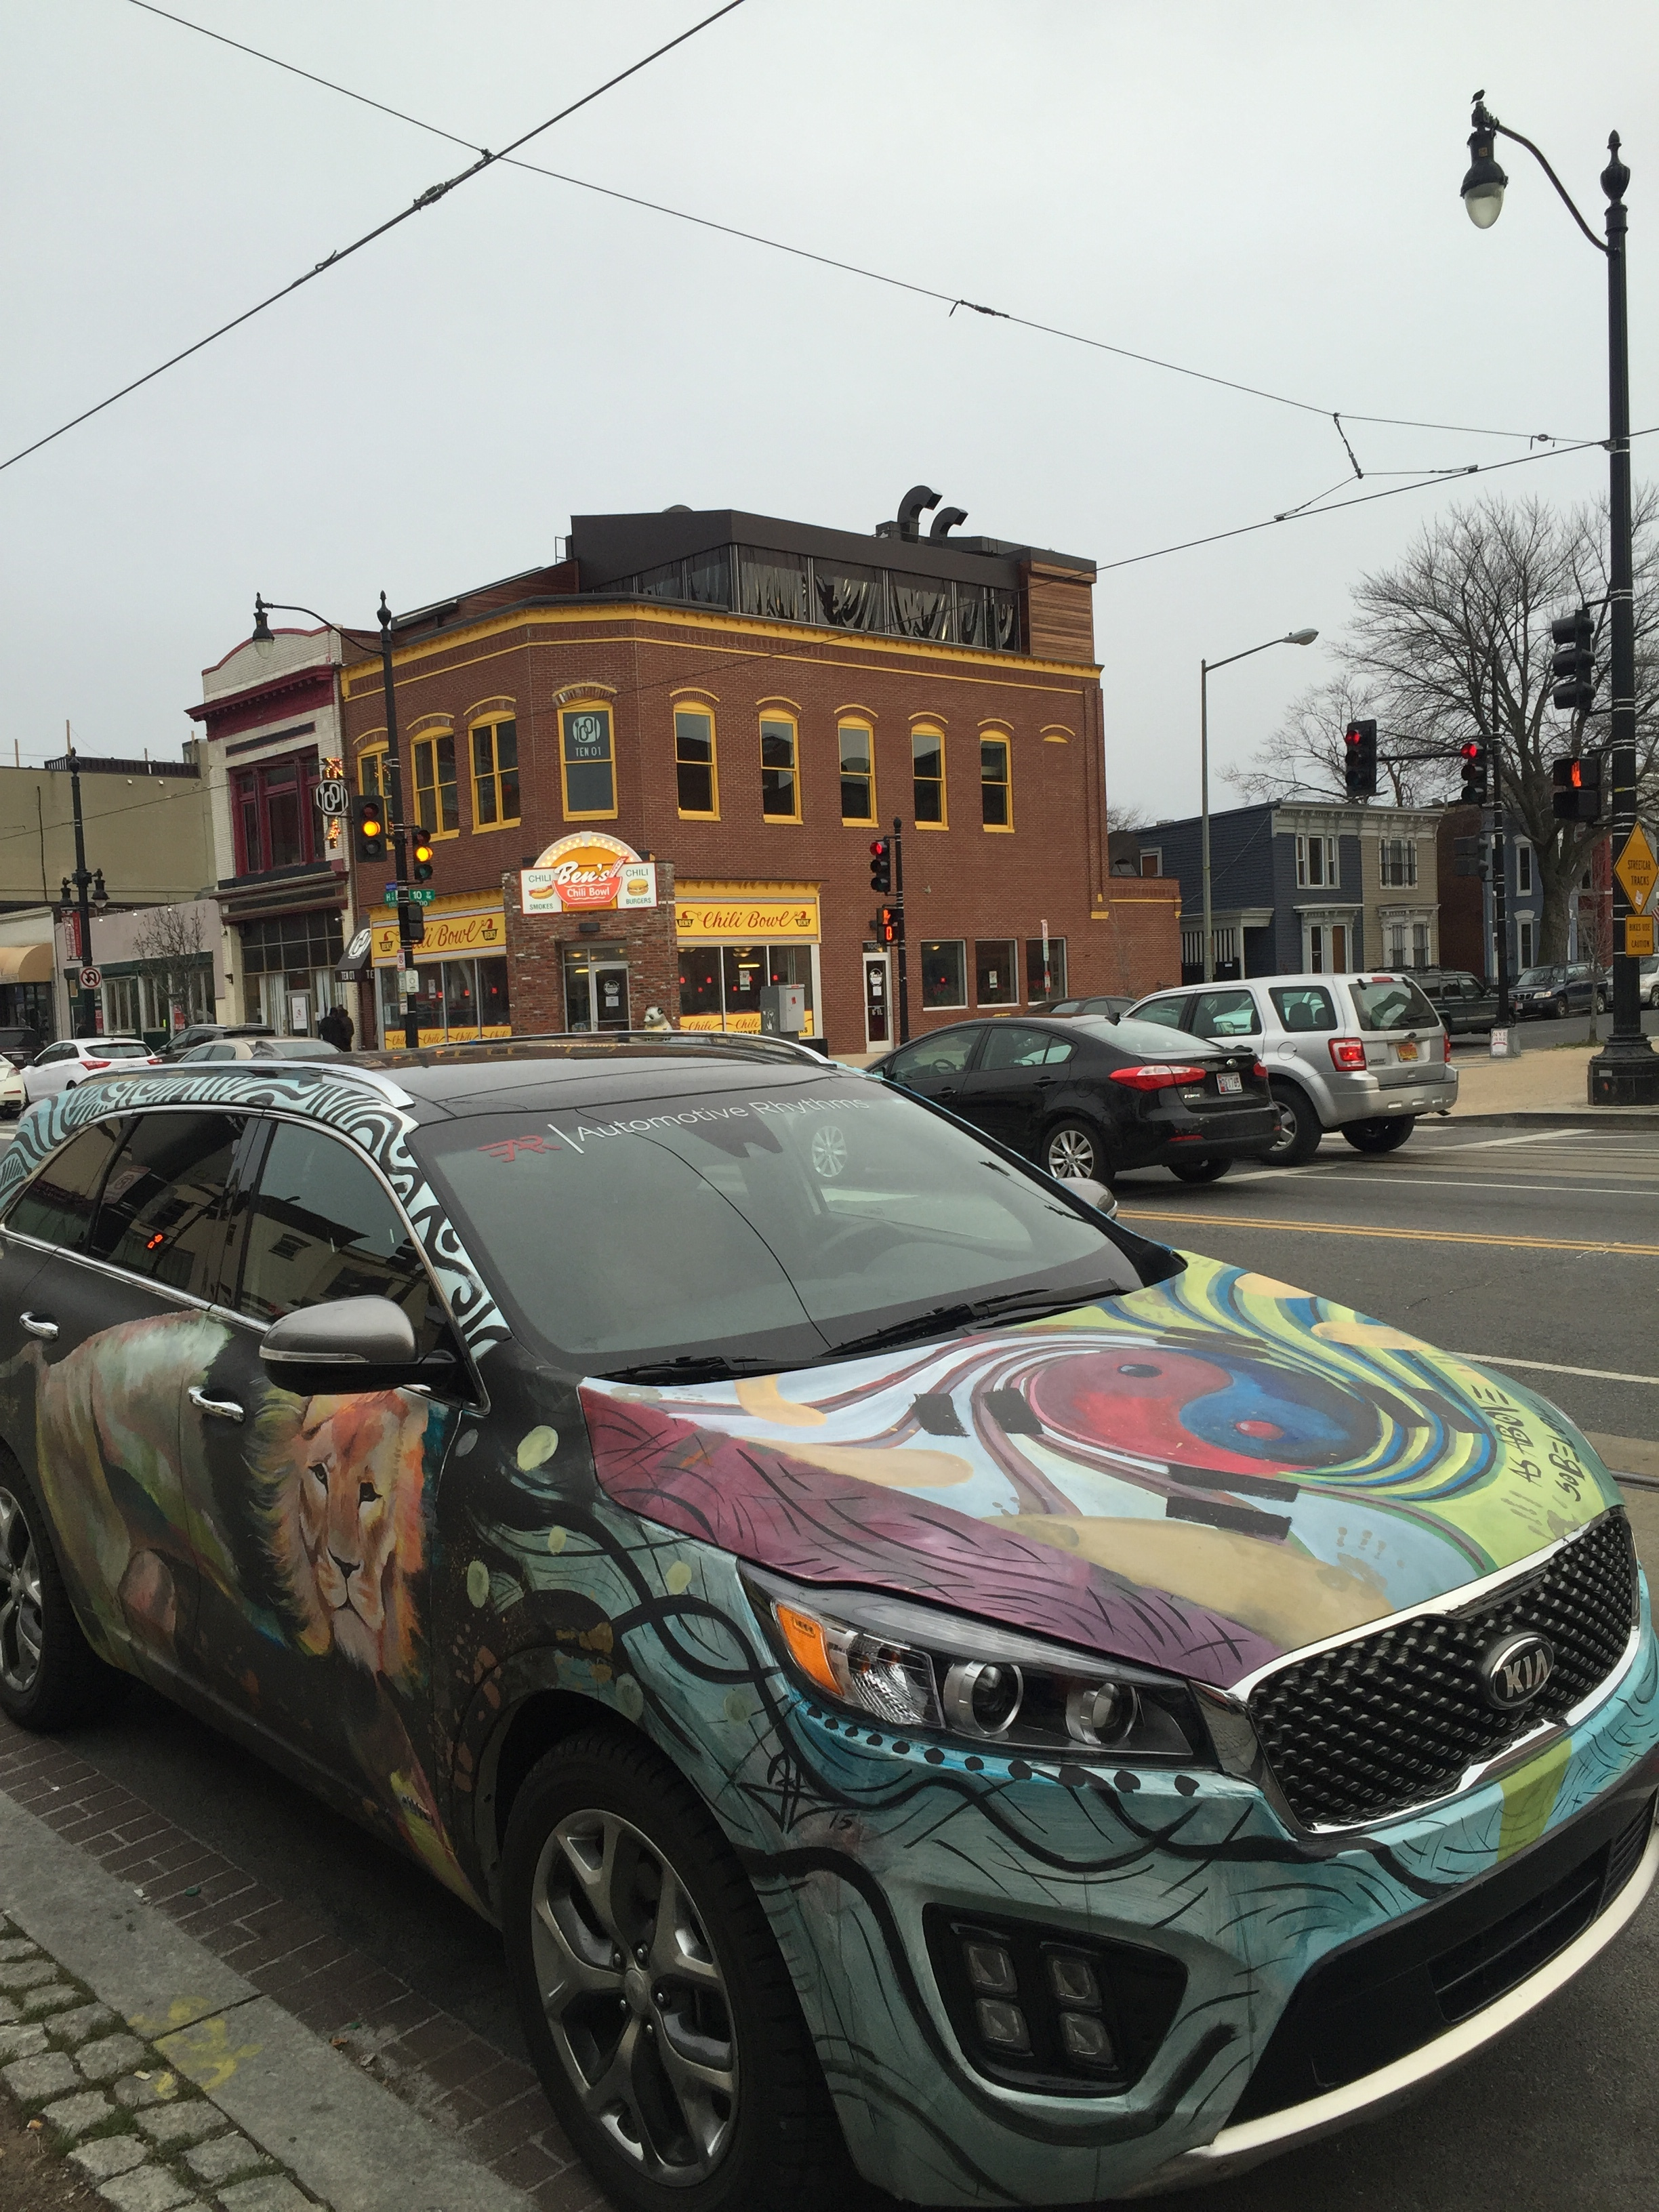 Kia Sorento Art Car - Ben's Chili Bowl